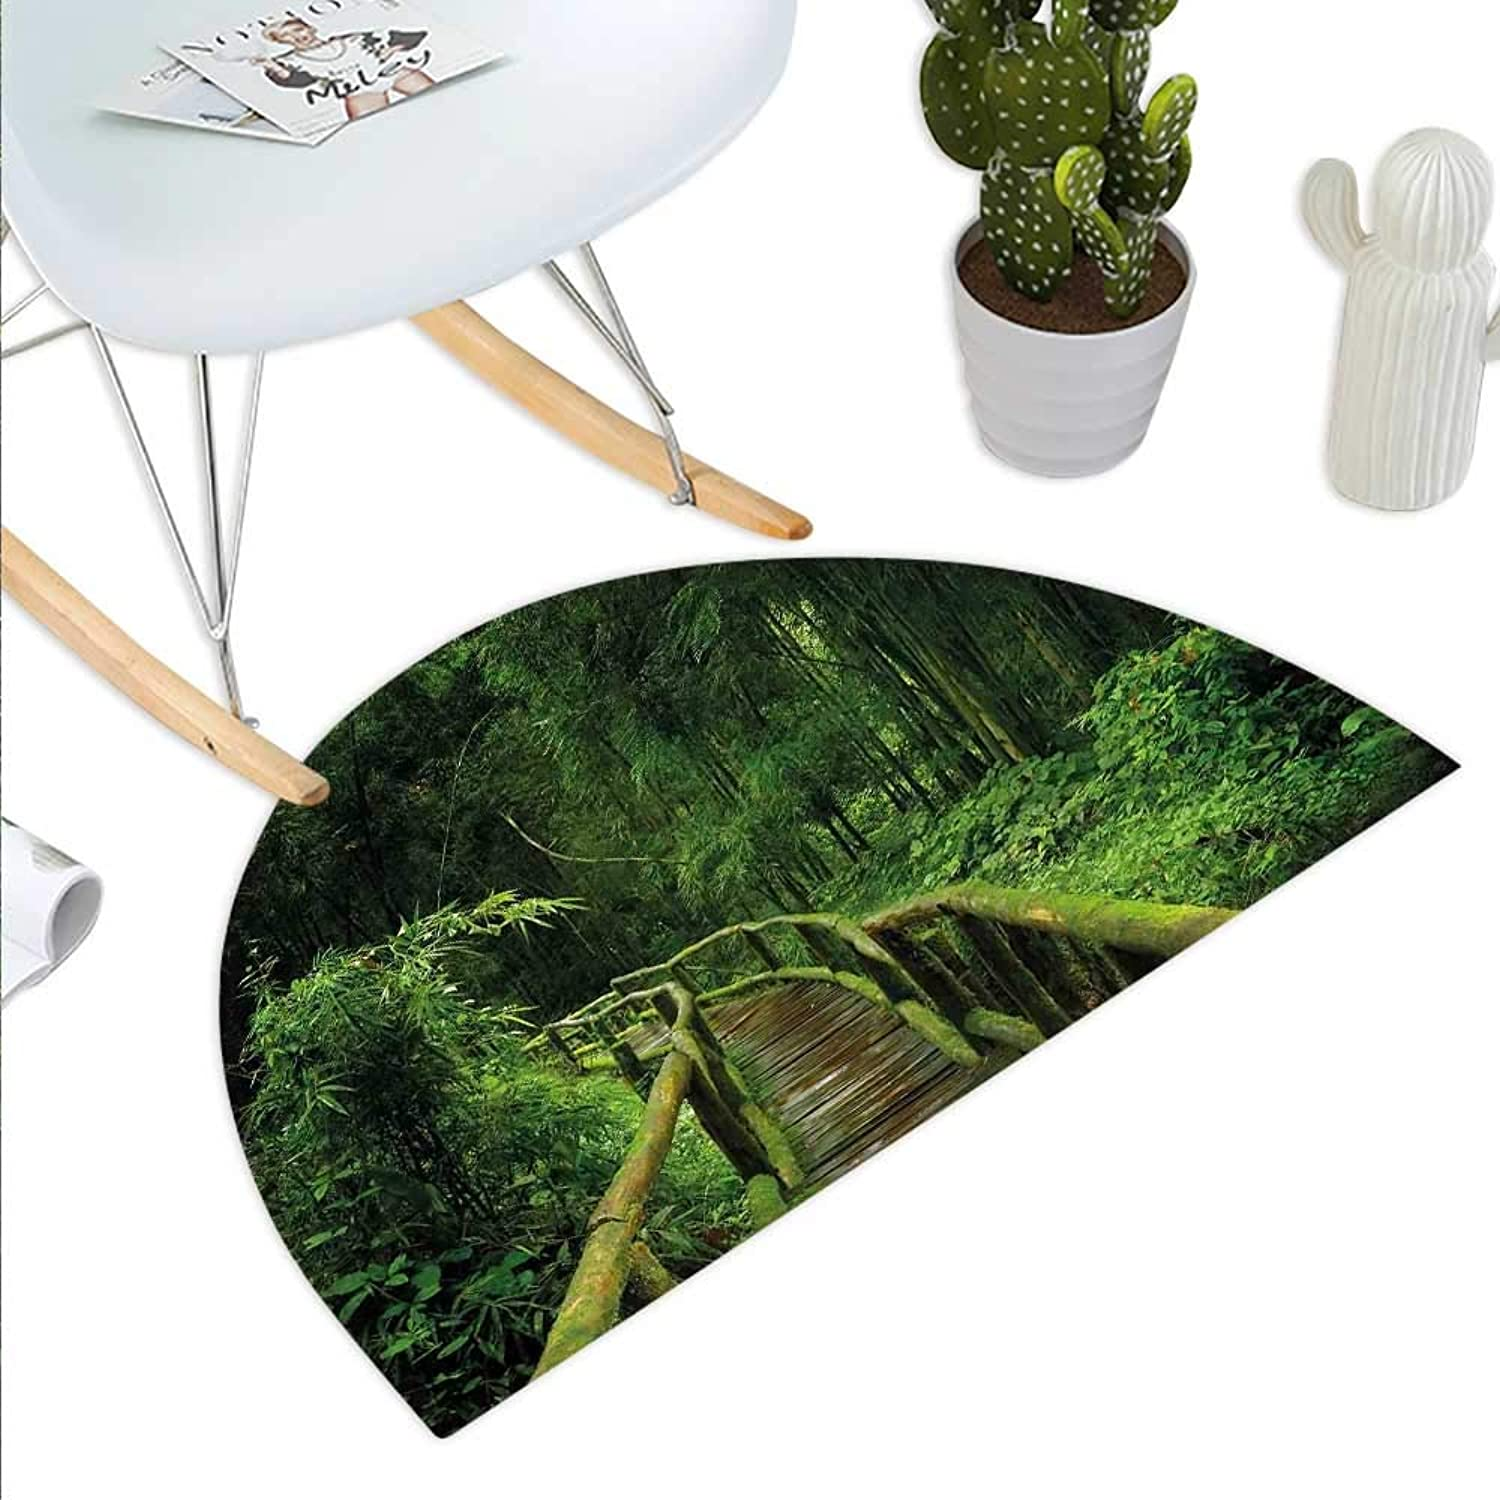 Jungle Semicircle Doormat Freshness Tropical Thailand Forest with Wooden Bridge Foliage Meditation Calm Landscape Halfmoon doormats H 39.3  xD 59  Green